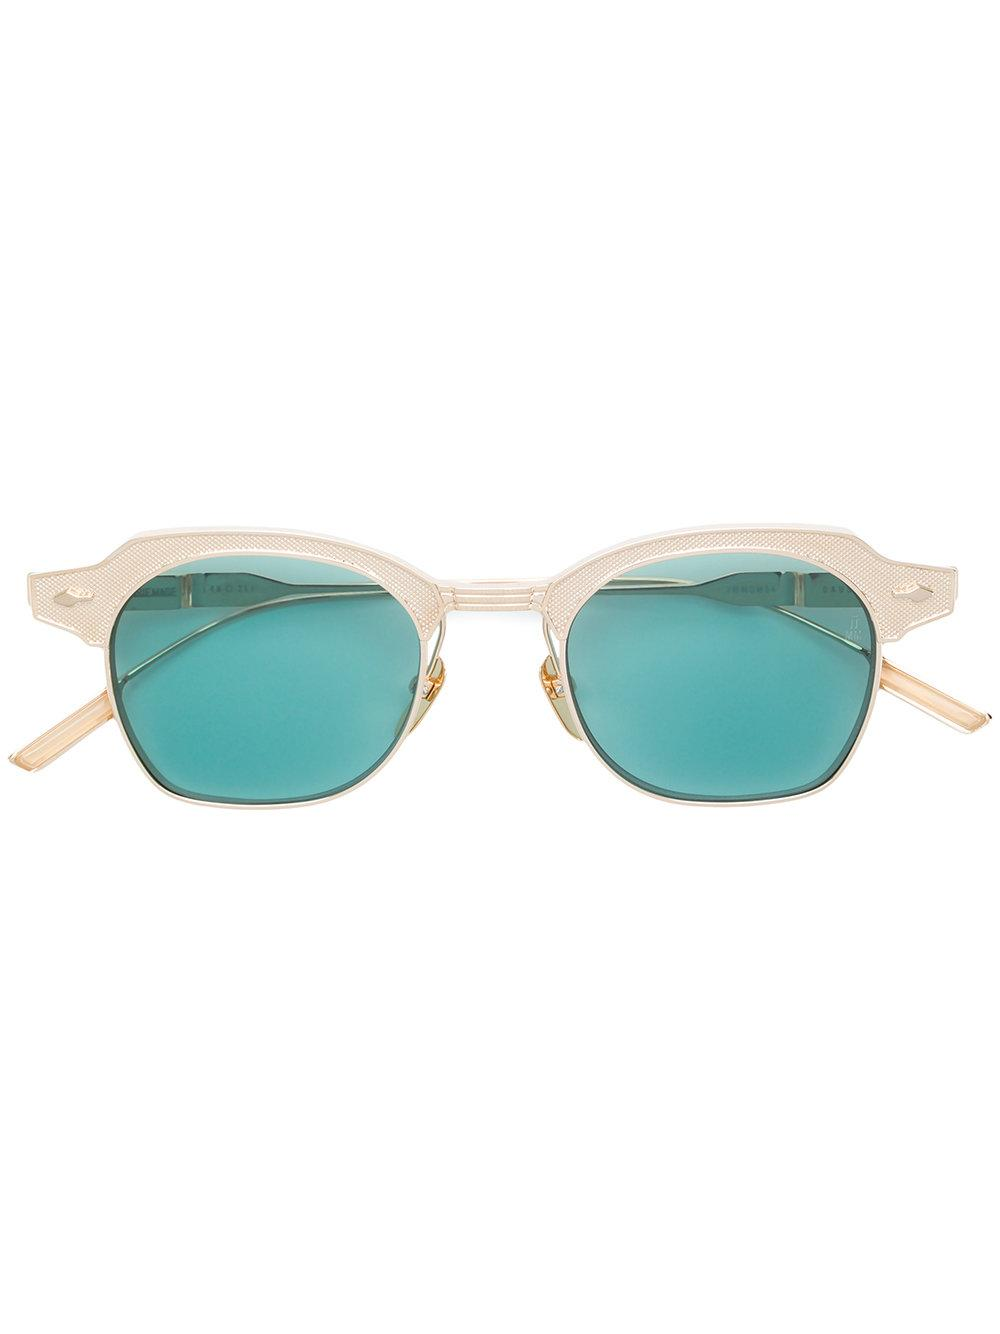 Jacques Marie Mage Dausmenil Square Frame Sunglasses In Green